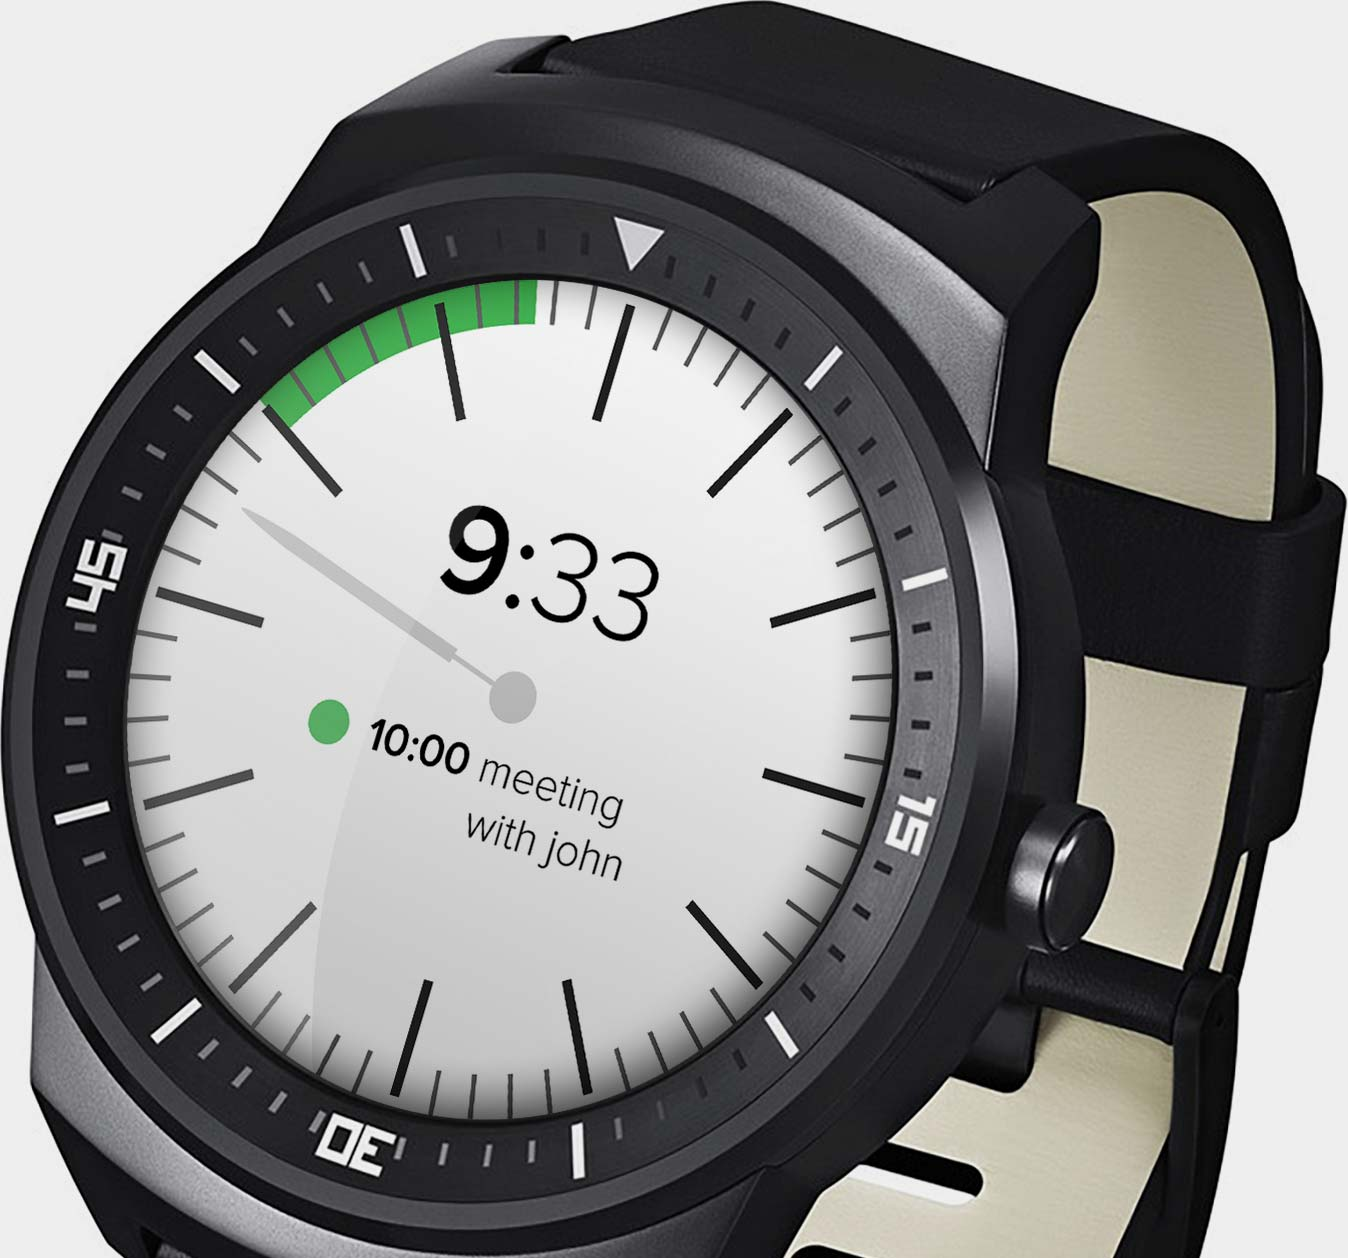 Smart Watch Studio - Birmingham UK Based Smart Watch